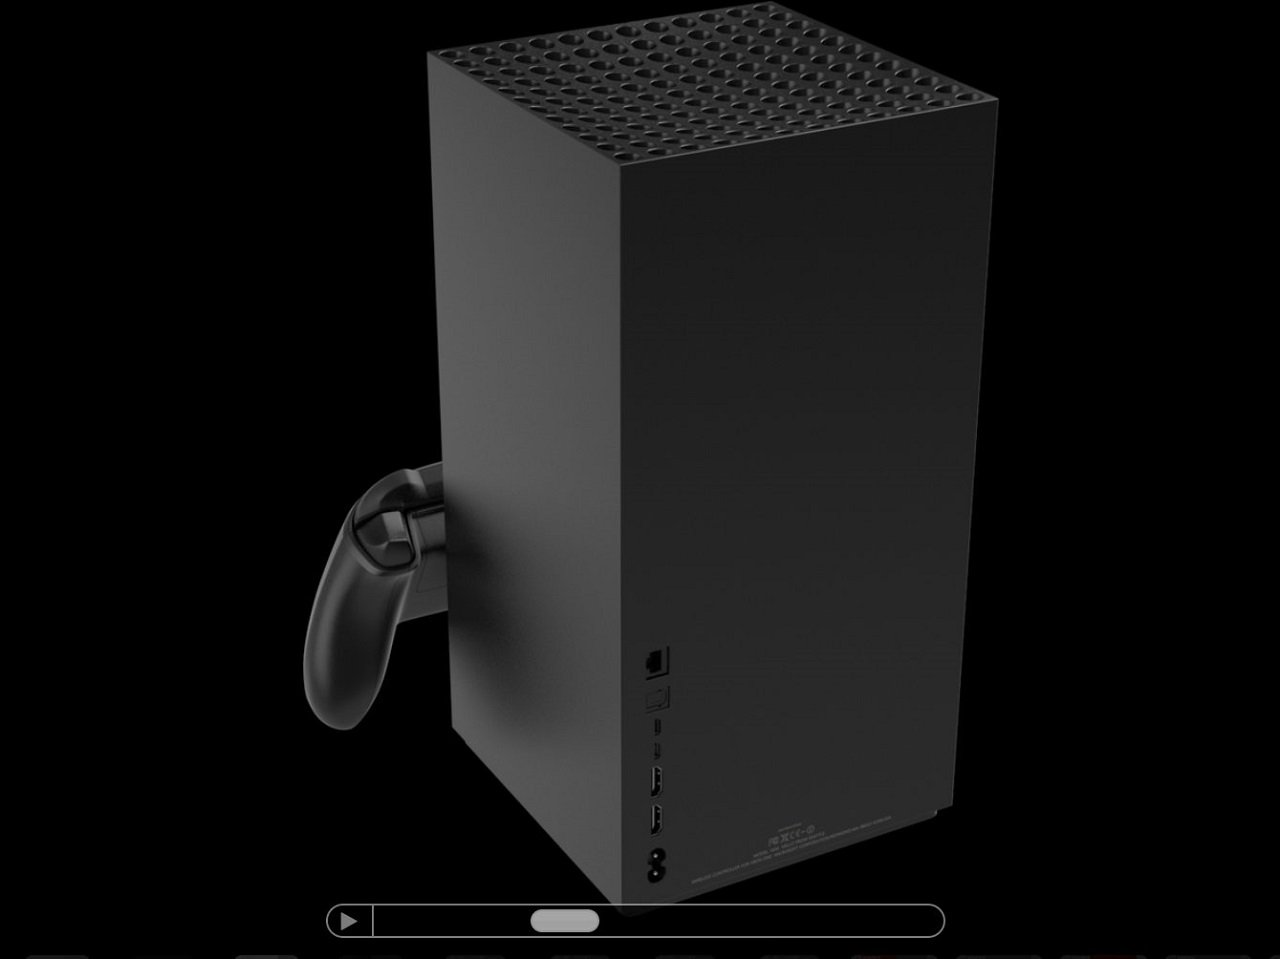 The images of the Xbox Series X used were apparently 3D renders sourced from a third party site known as TurboSquid, which includes disclaimers that they may not be accurate.